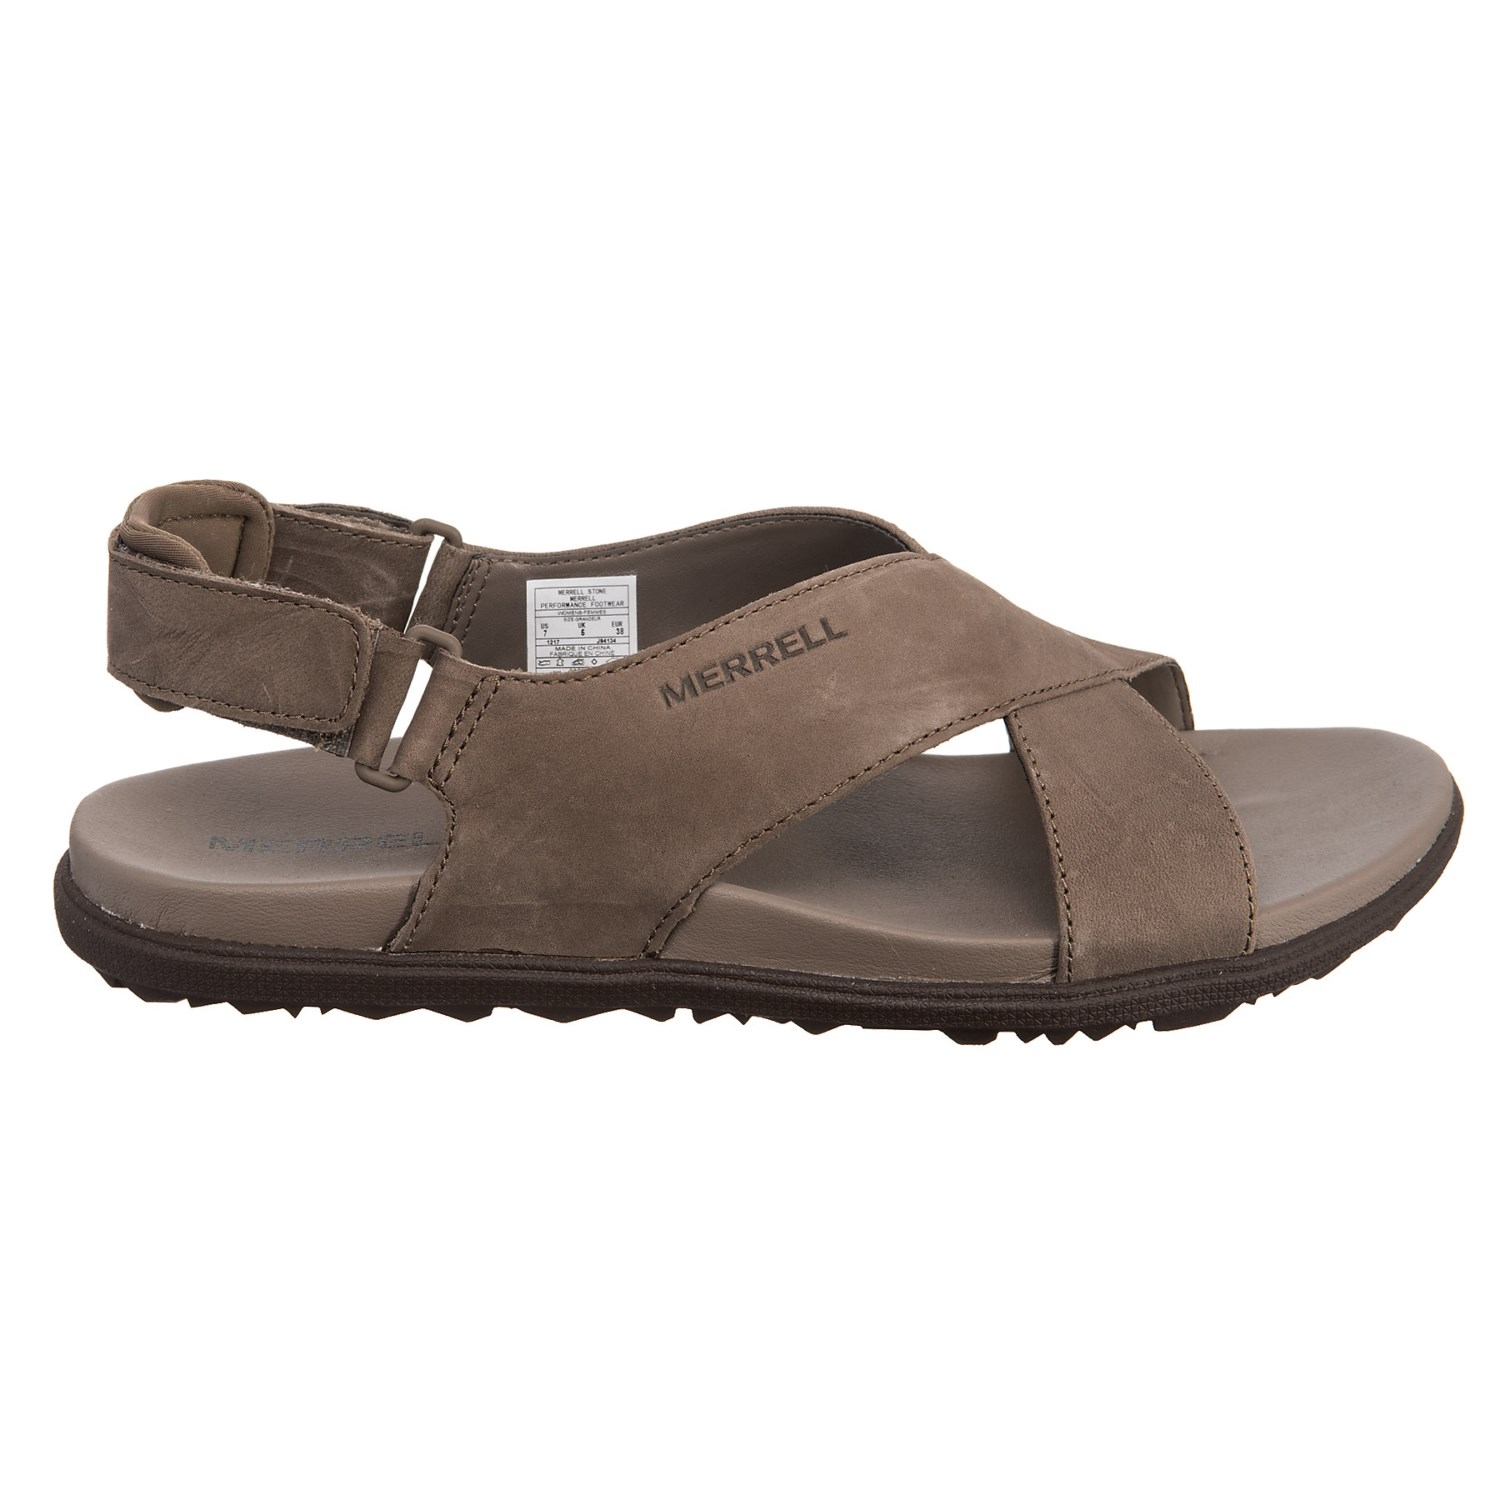 885d51f34e79 Merrell Around Town Sunvue Strap Sandals (For Women) - Save 42%